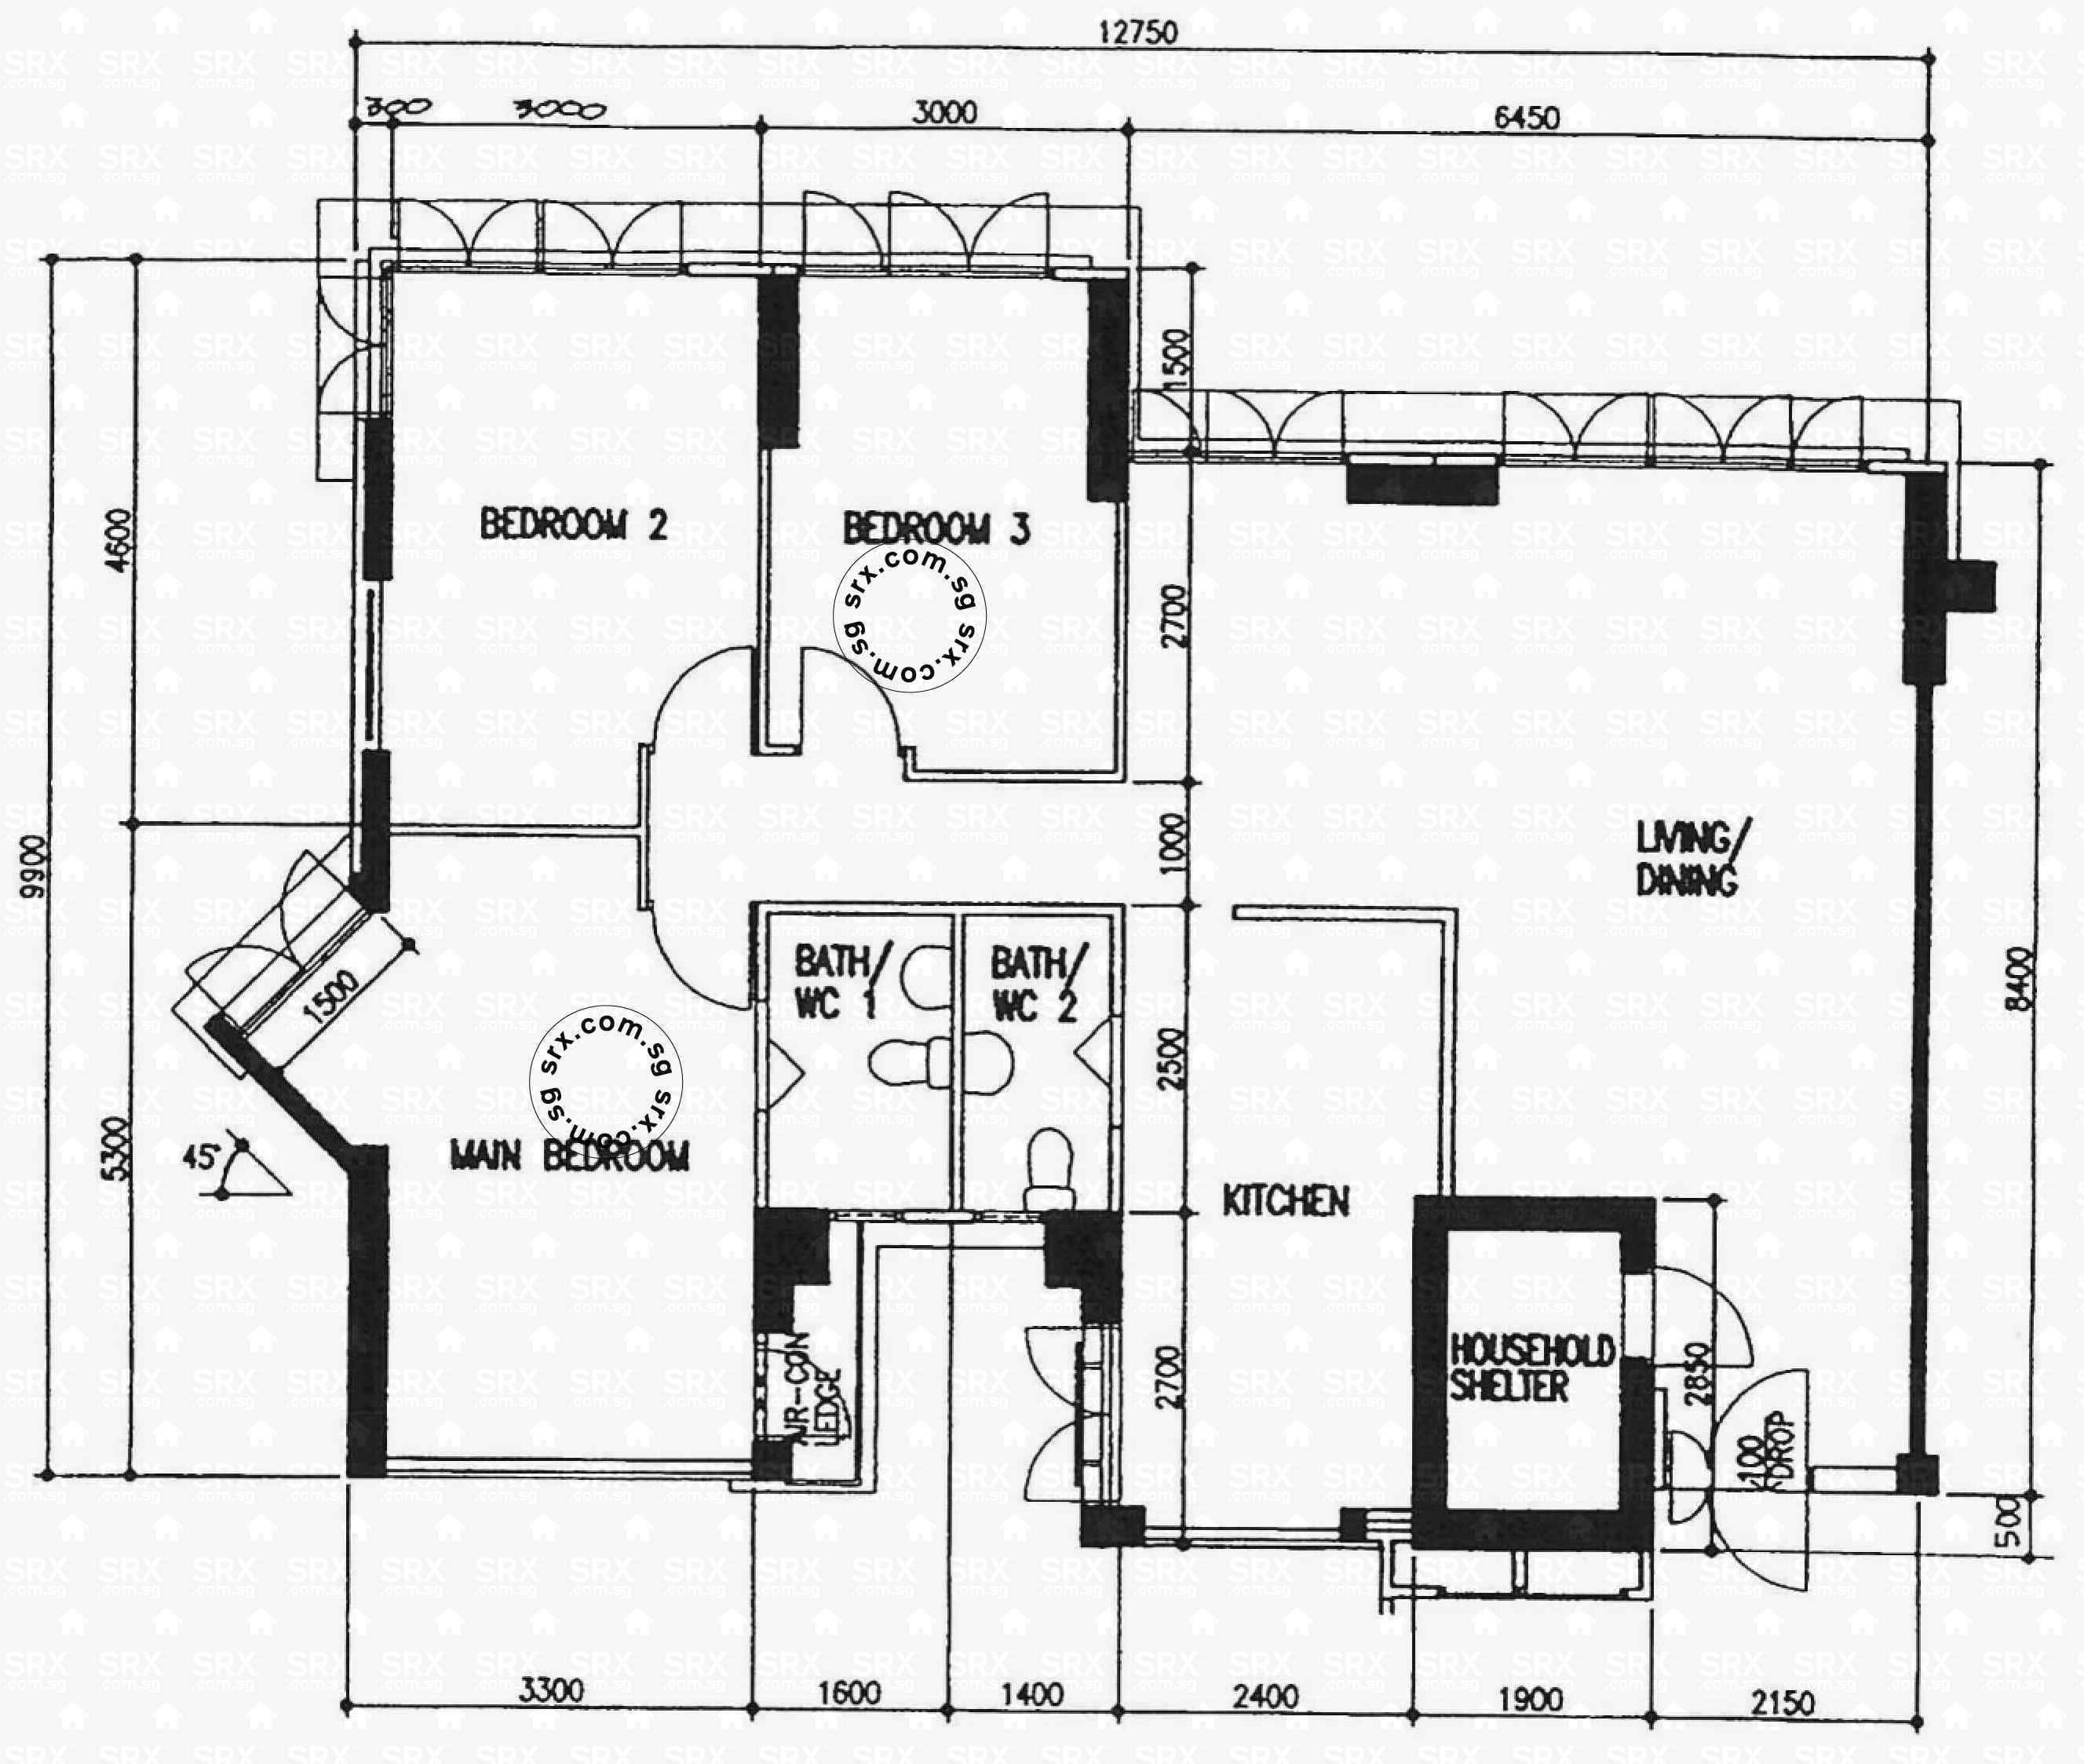 House Floor Plans 50 400 Sqm Designed By Teoalida: Singapore Hdb Unit Block Diagram